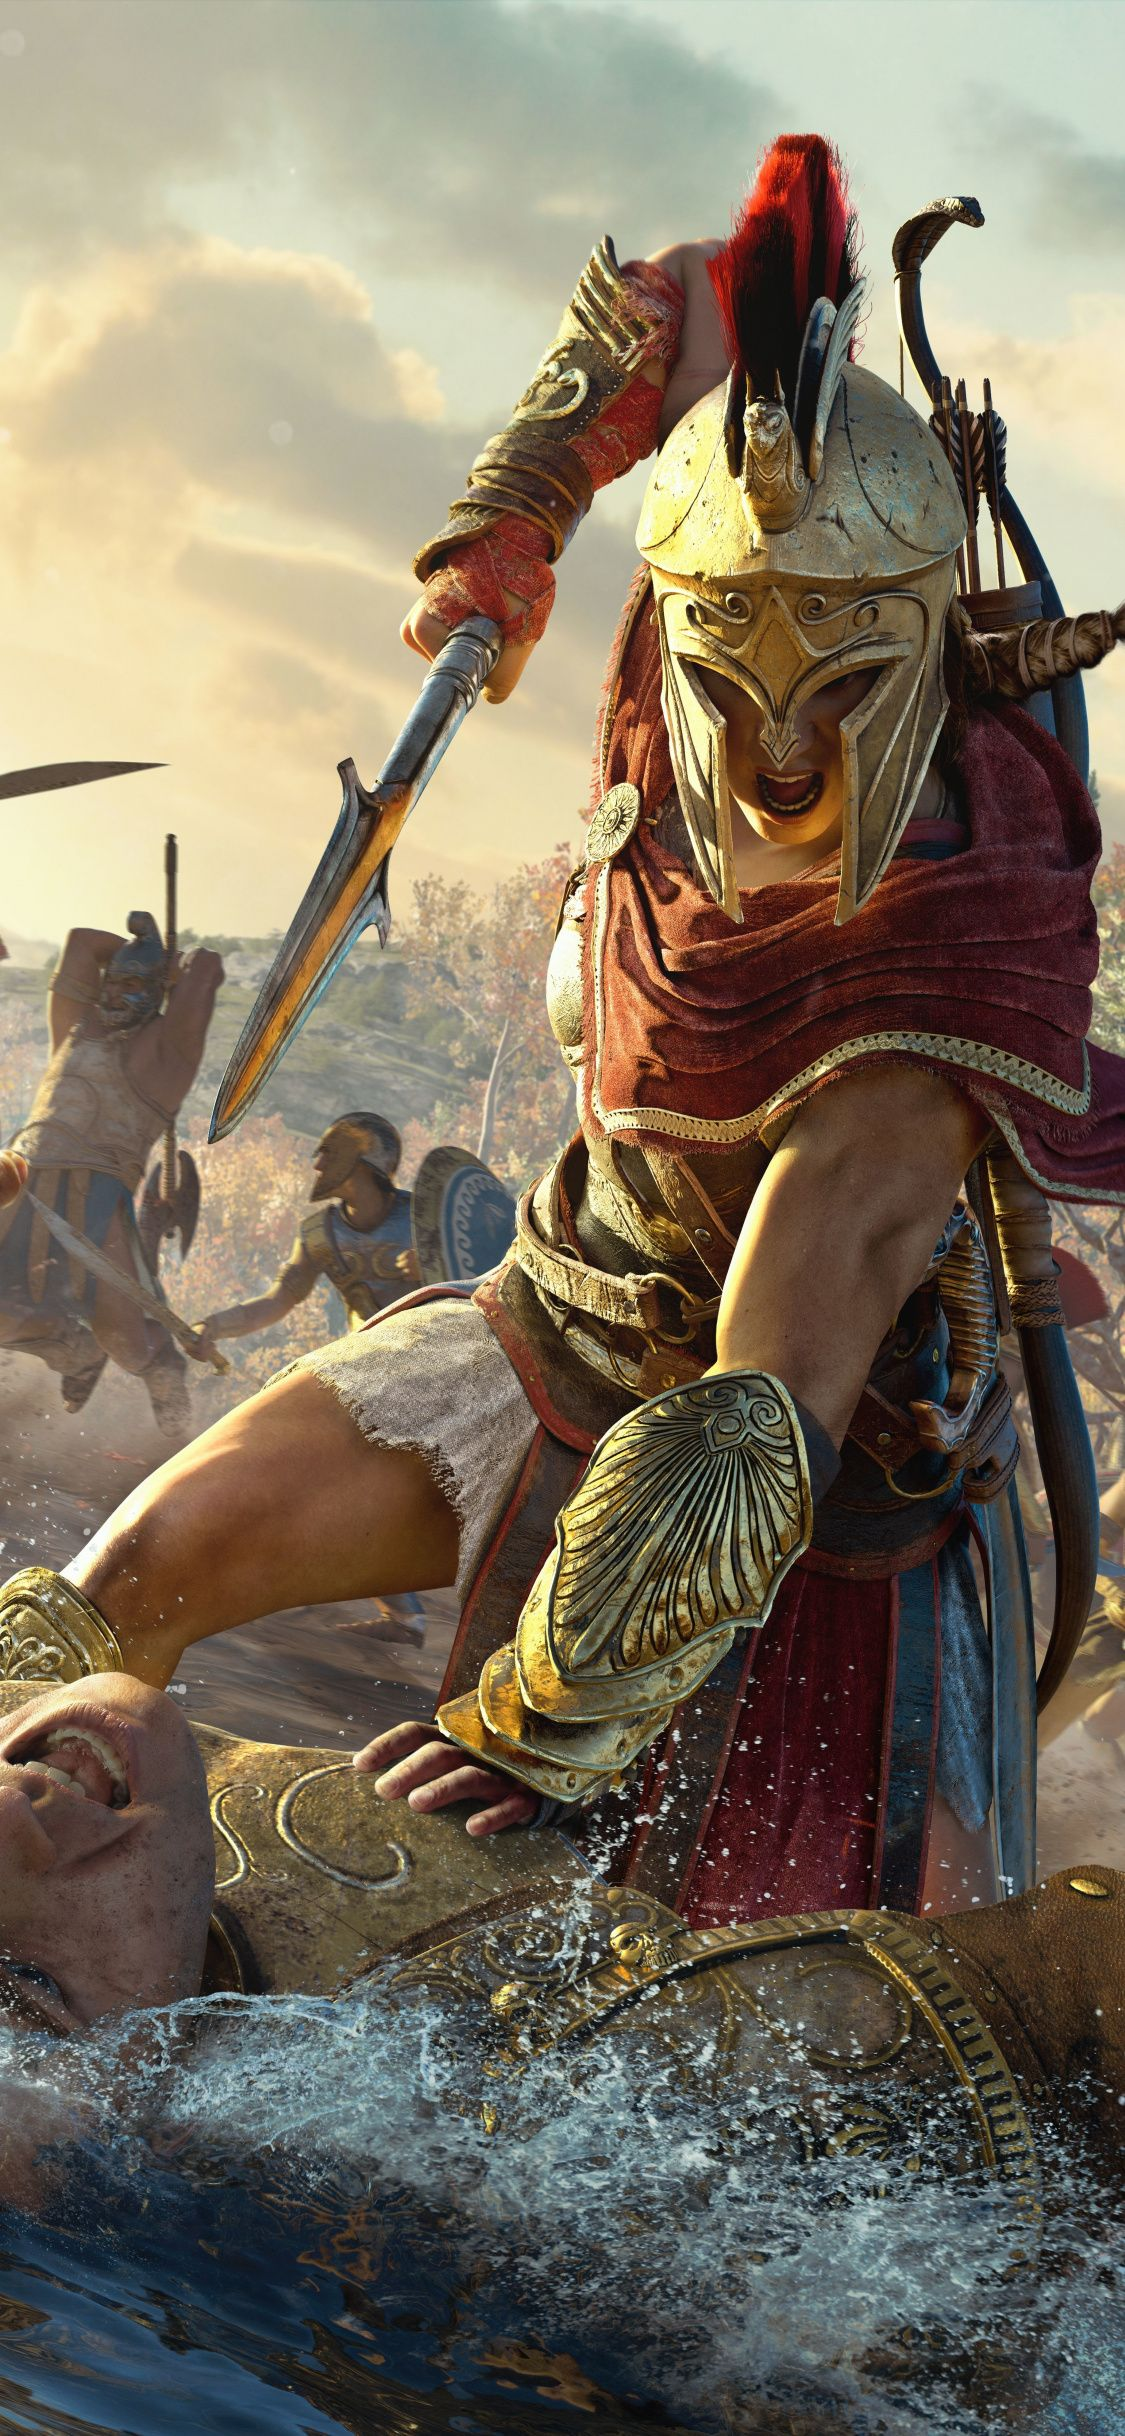 Kassandra, Assassin's Creed Odyssey, warrior, 2018